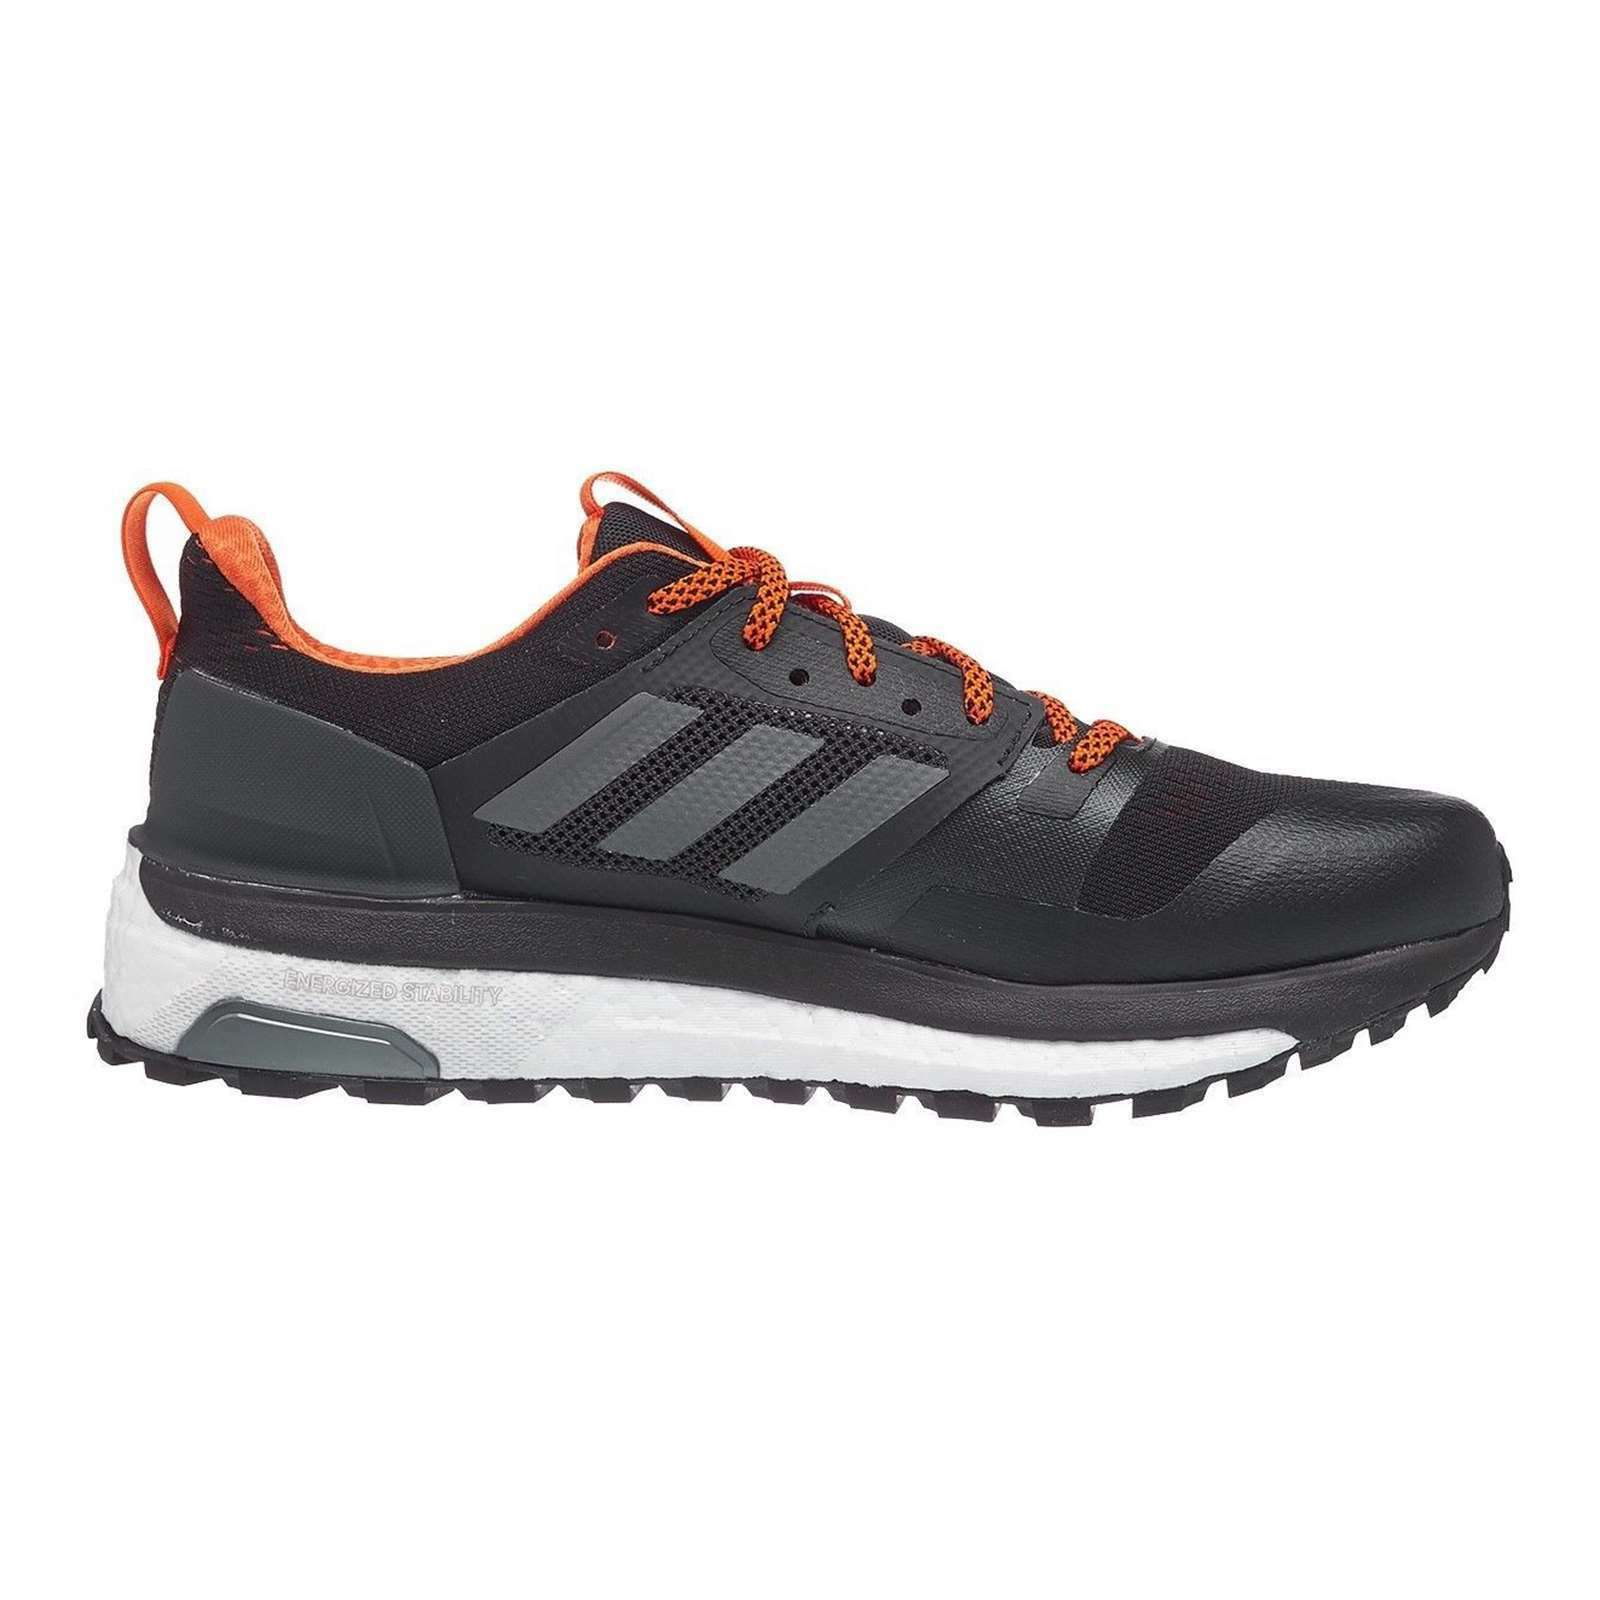 21d4bee38cdad Buy adidas Mens Supernova Trail Running Shoes Cg4025 Size 10 online ...